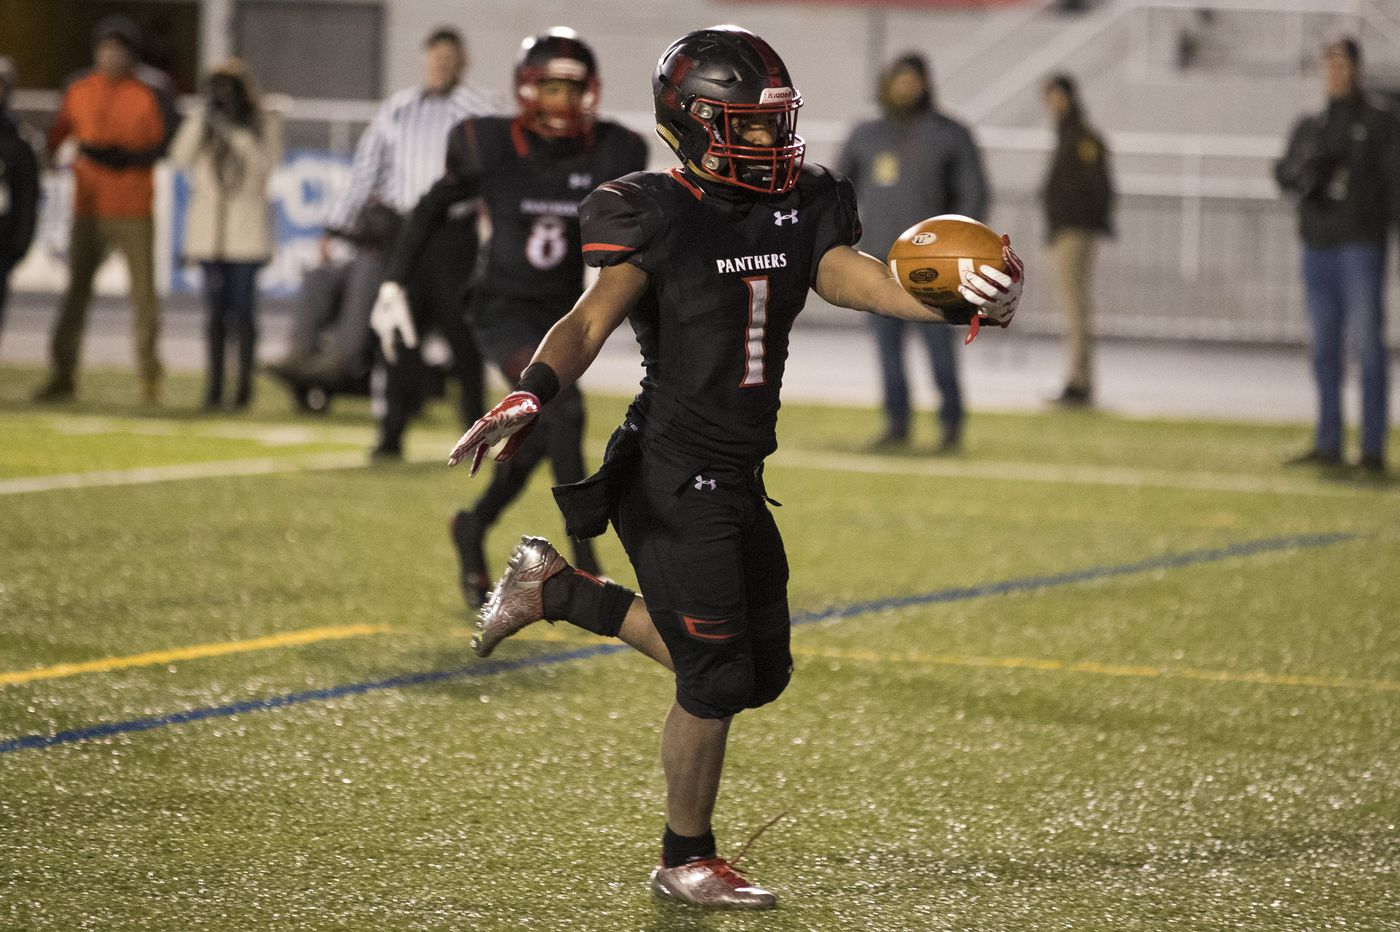 High school football preview: La Salle faces huge test against Imhotep Charter in season opener